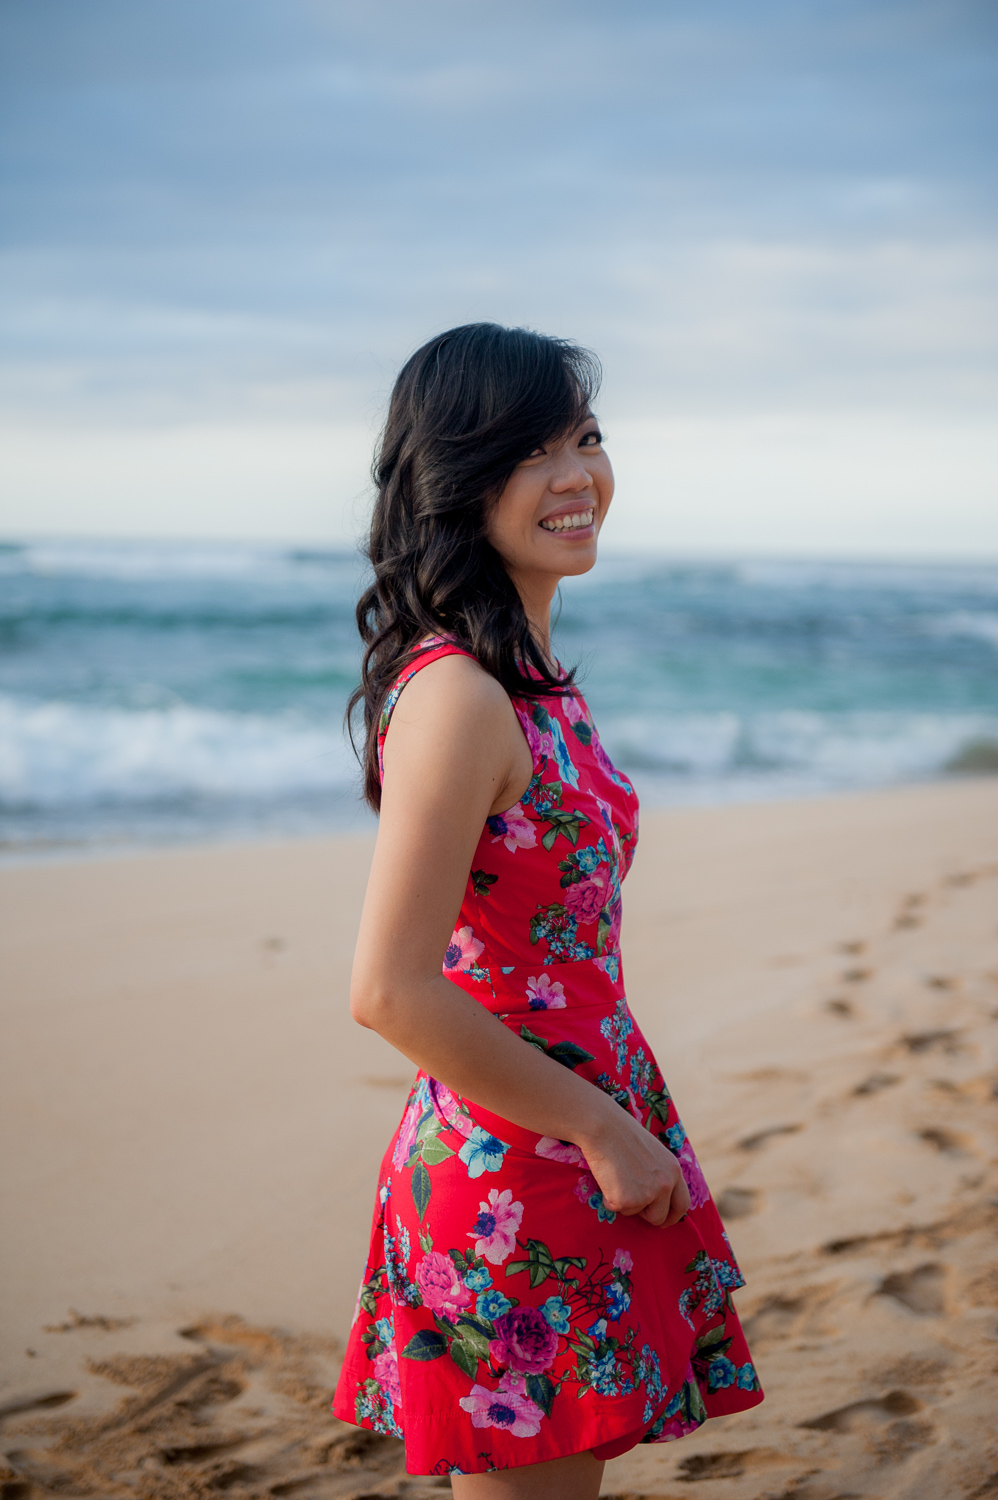 Photo of woman in red dress on North Shore beach